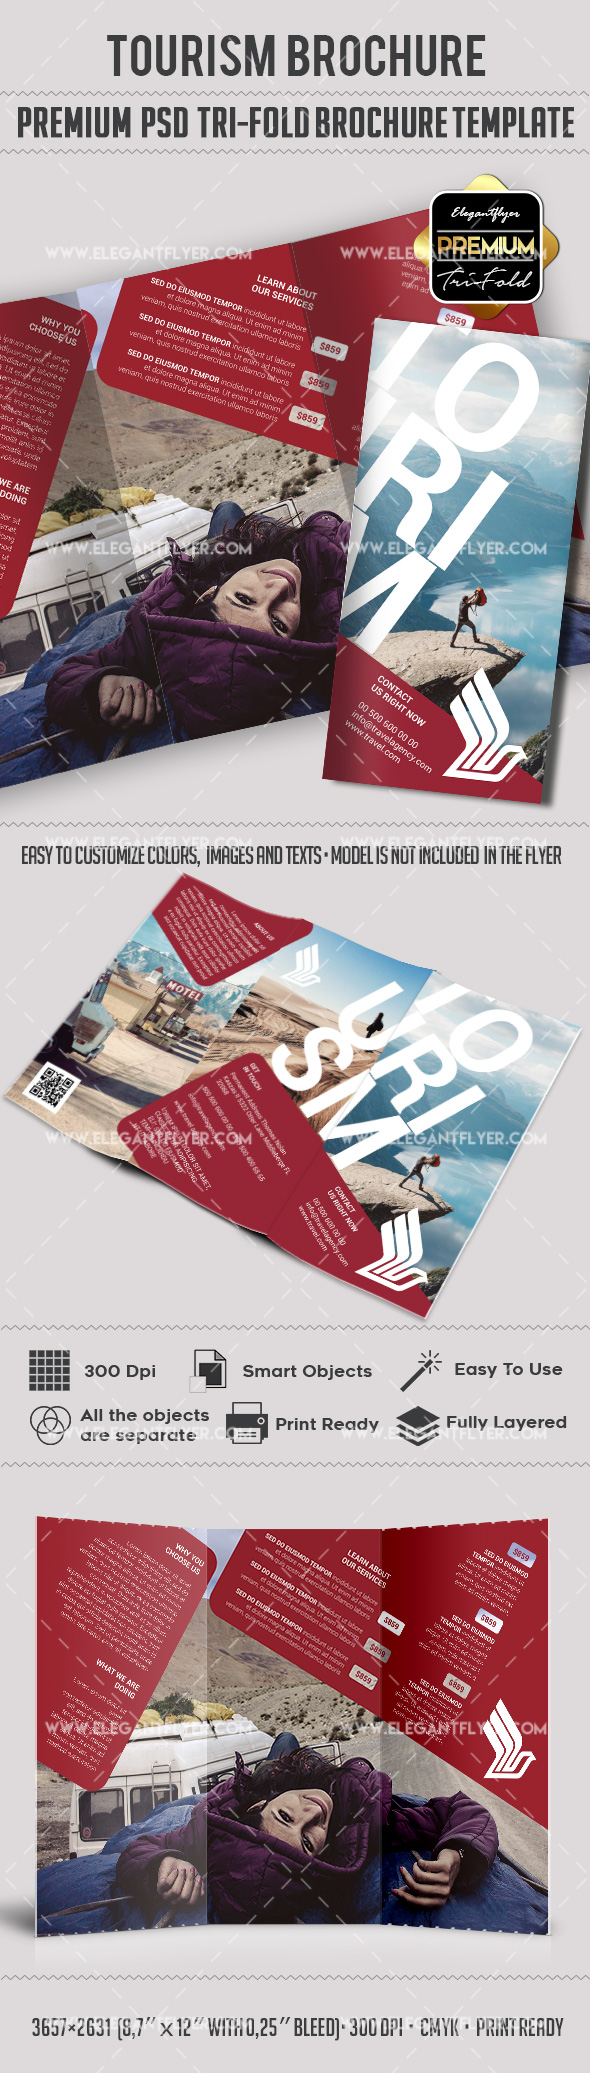 Travel and tourism tri fold brochure template by for Travel and tourism brochure templates free